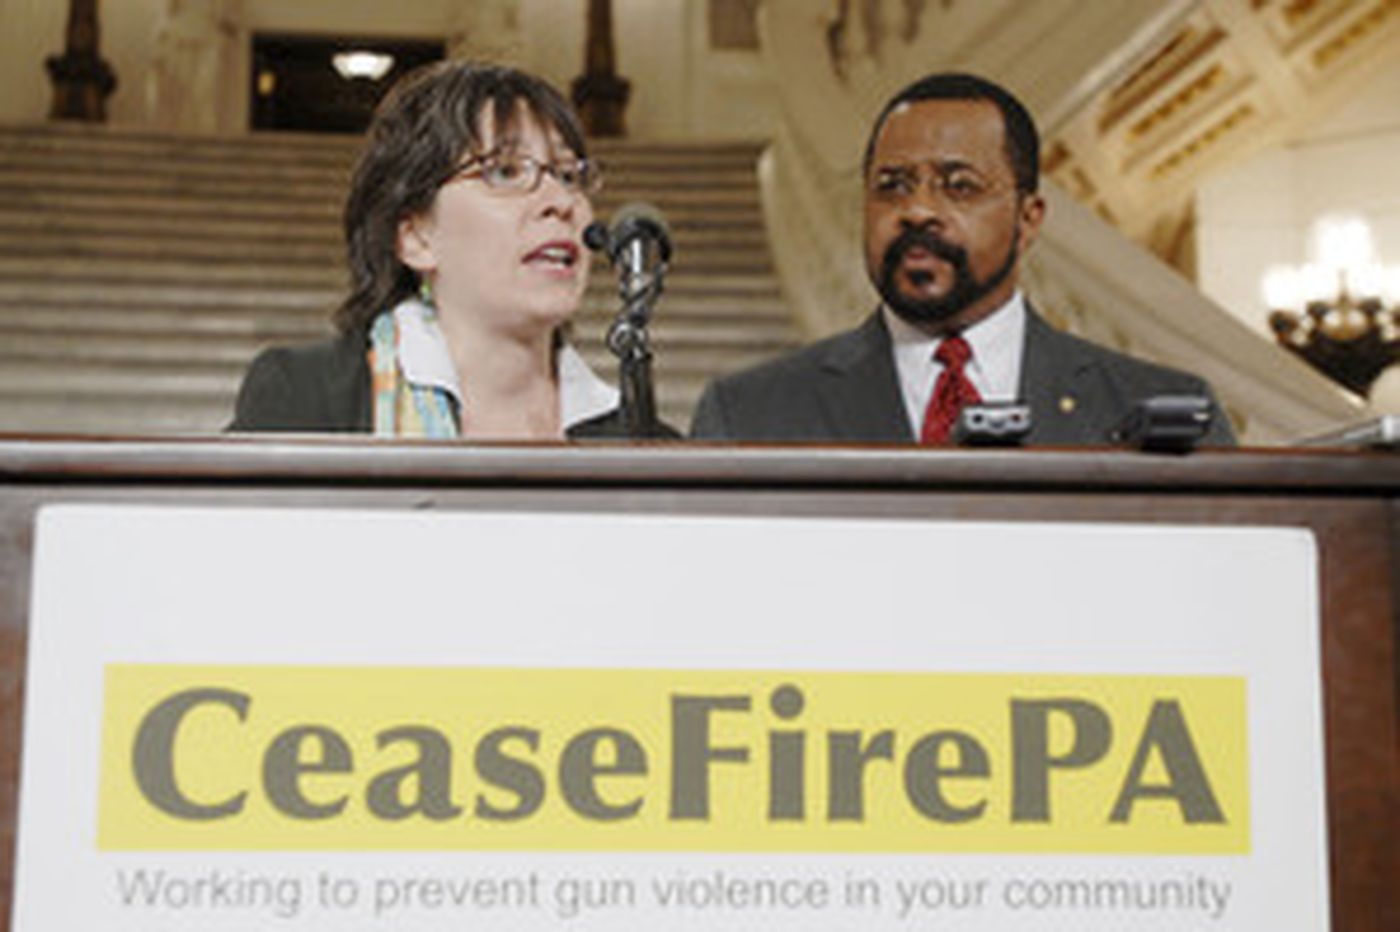 Gun-control lawmaker threatened